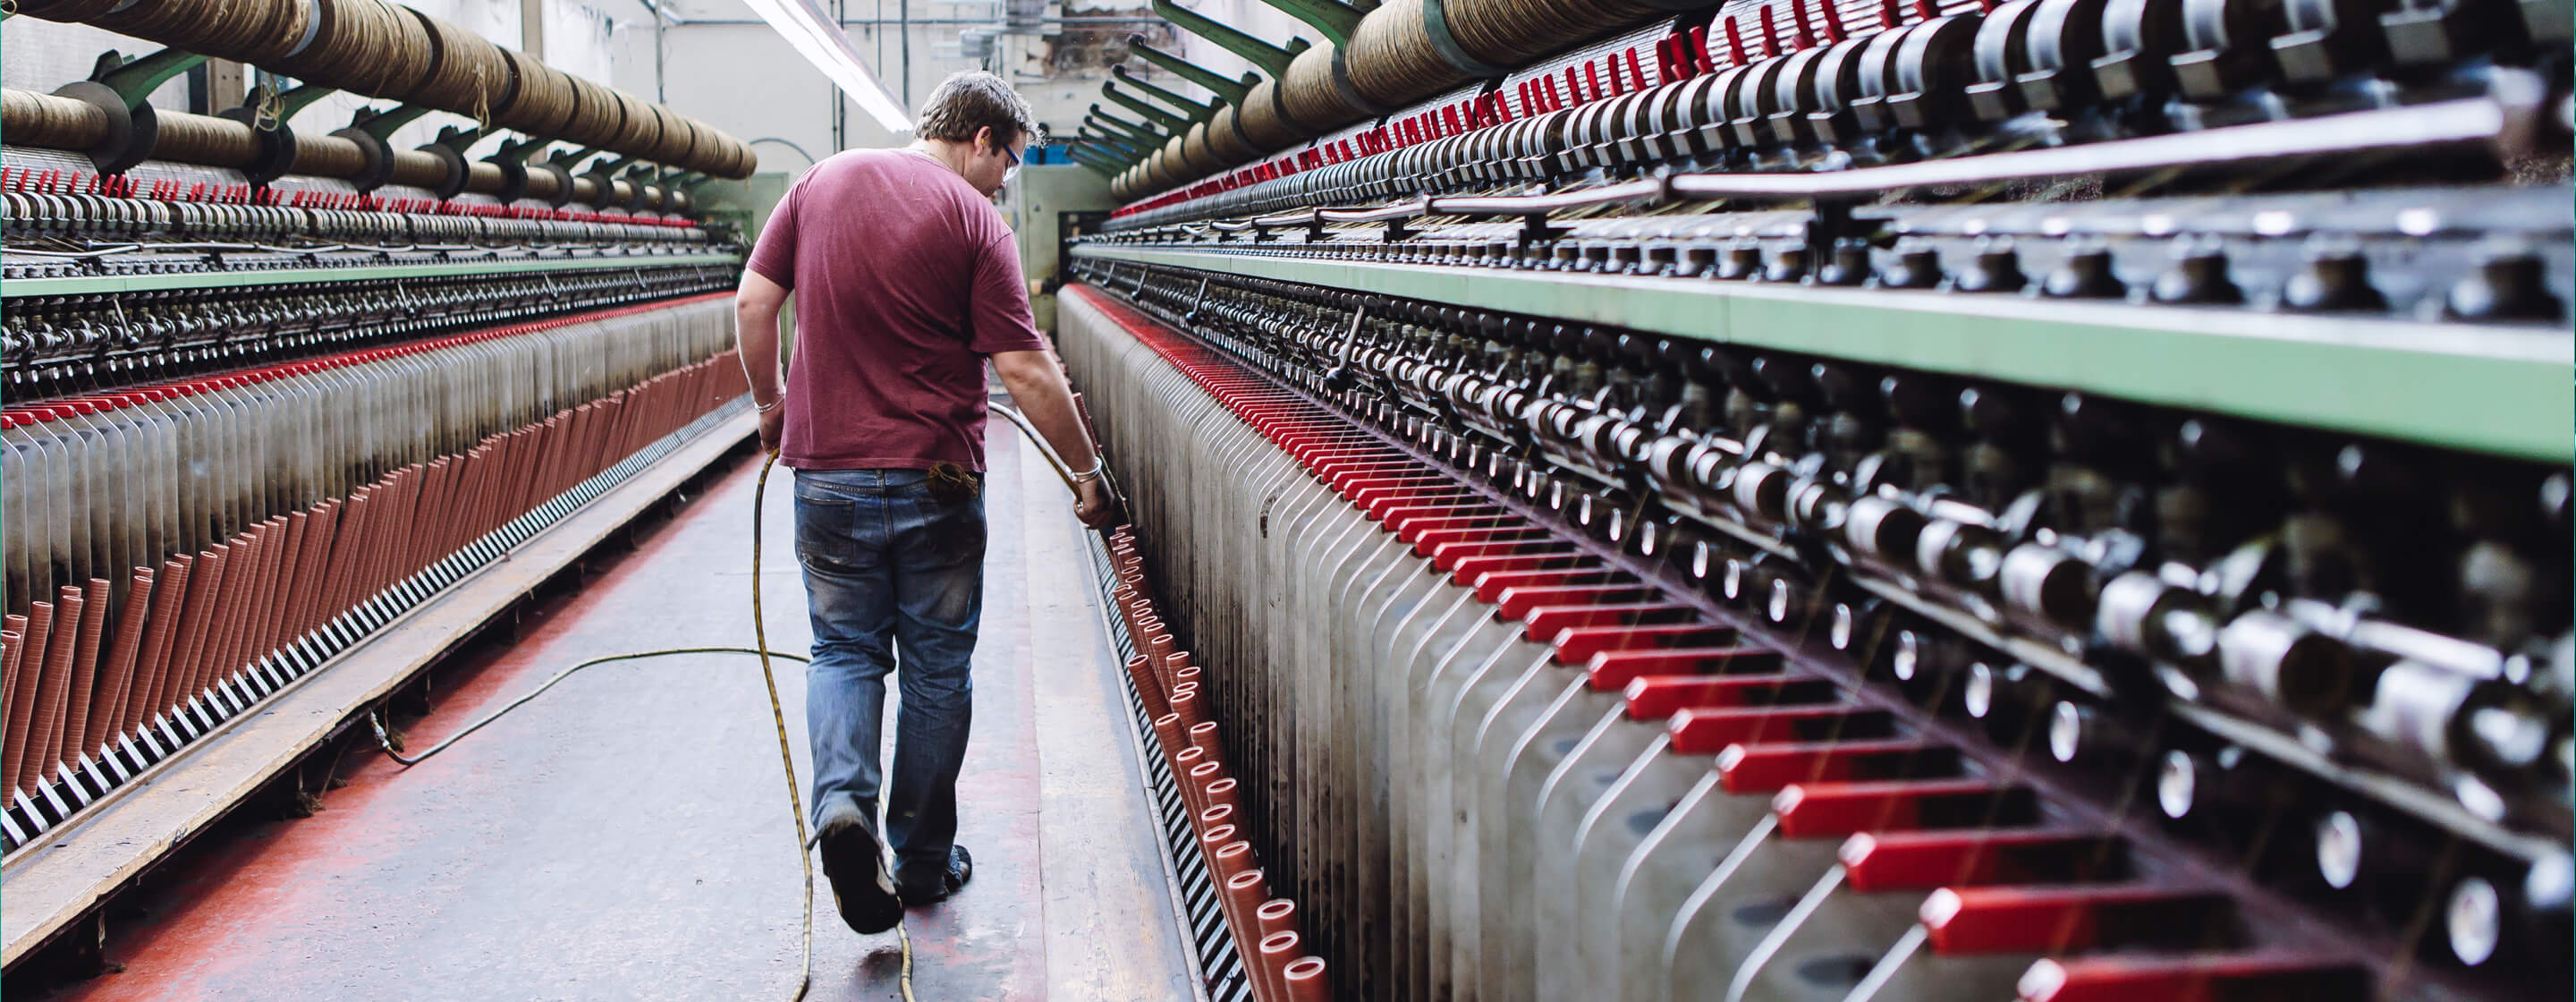 Man in t-shirt and jeans tending to large industrial textile looms in the textiles industry